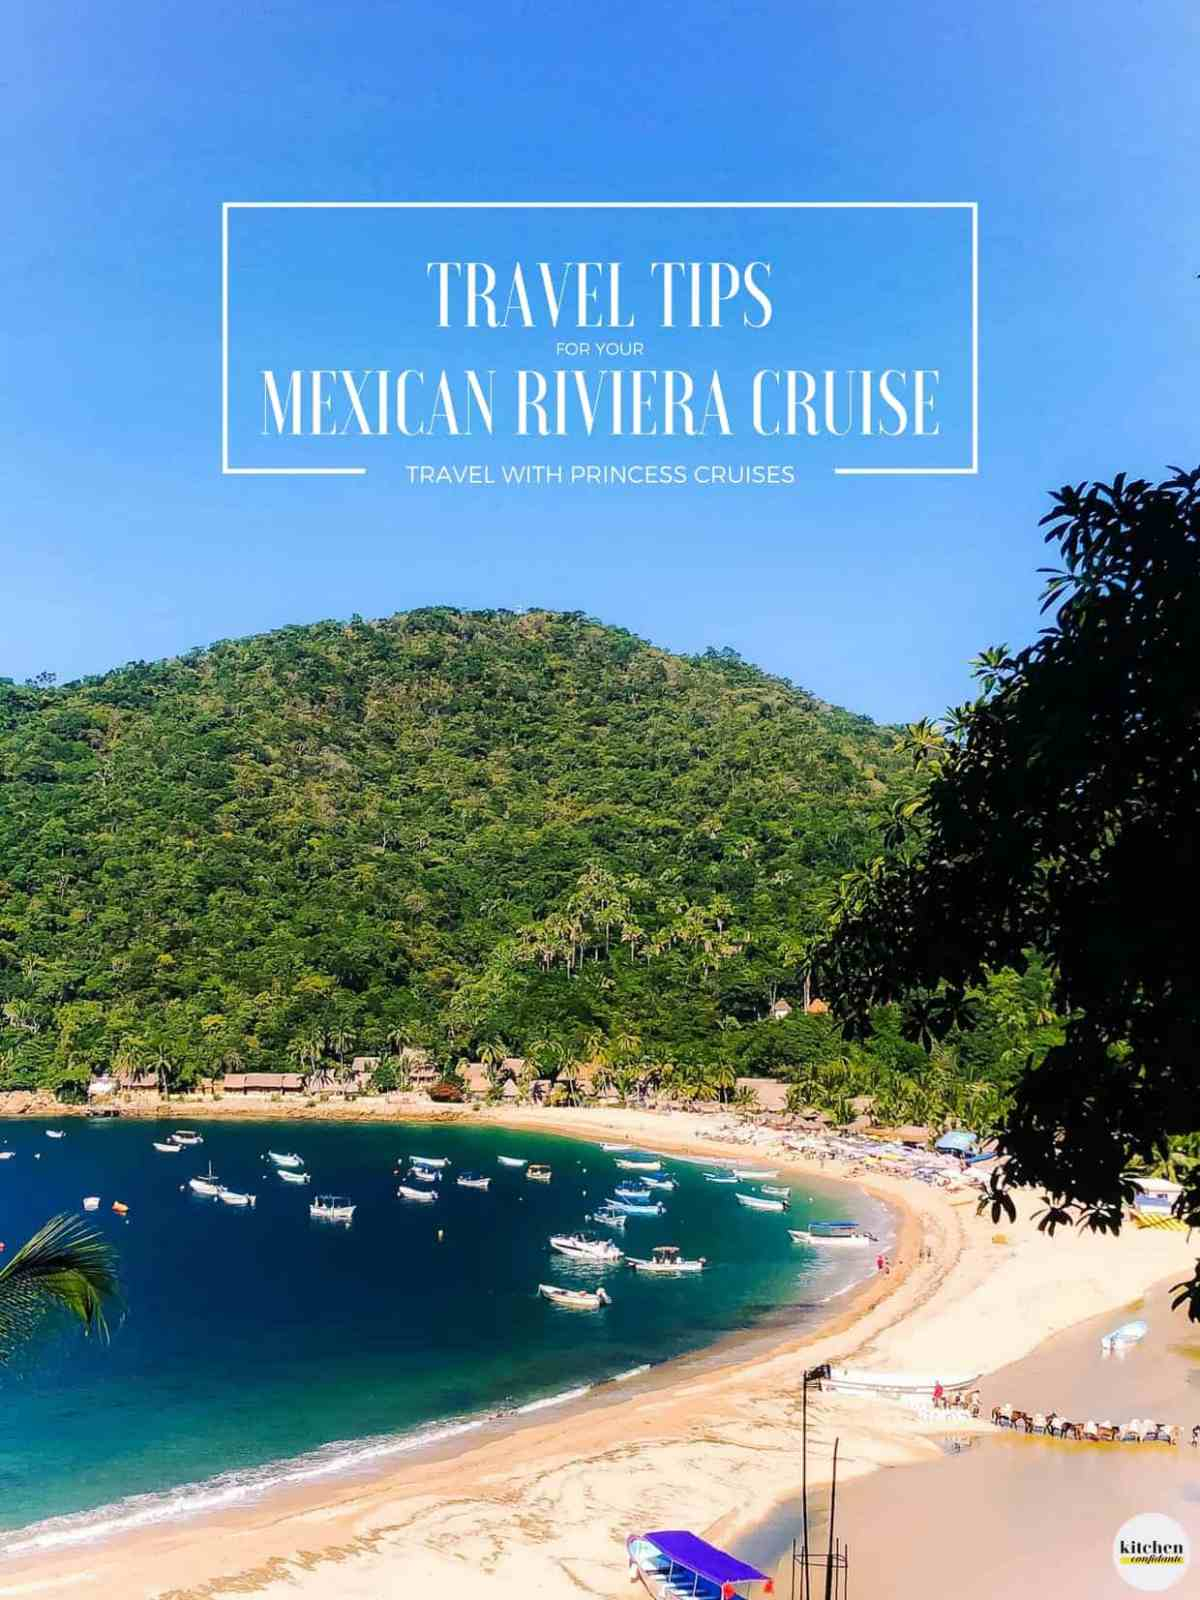 Find out all my travel tips for your Mexican Riviera Cruise with @PrincessCruises! Check out life on board, dining, excursions and more! #ad #comebacknew #travel #cruise #cruising #rubyprincess #princesscruises #vacation #travelguide #foodietravel